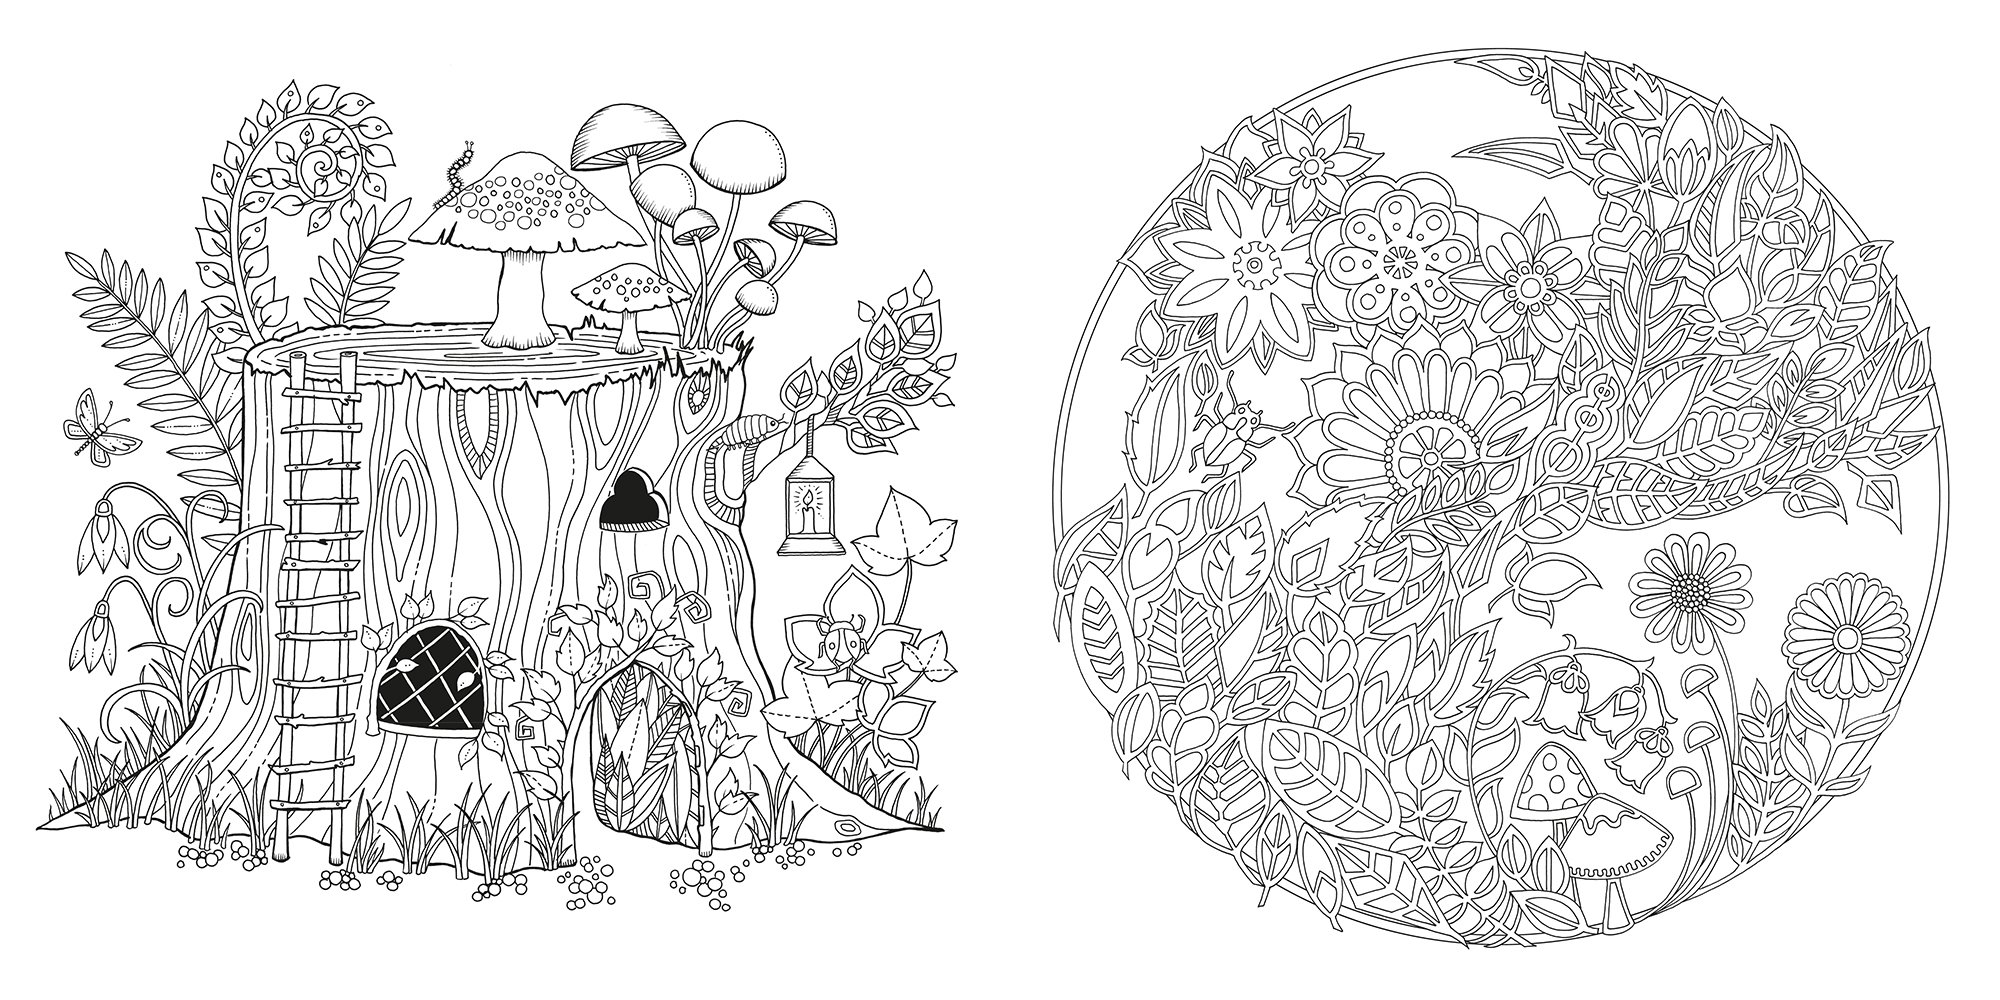 Enchanted forest coloring book website -  Coloring Book Enchanted Forest An Inky Quest